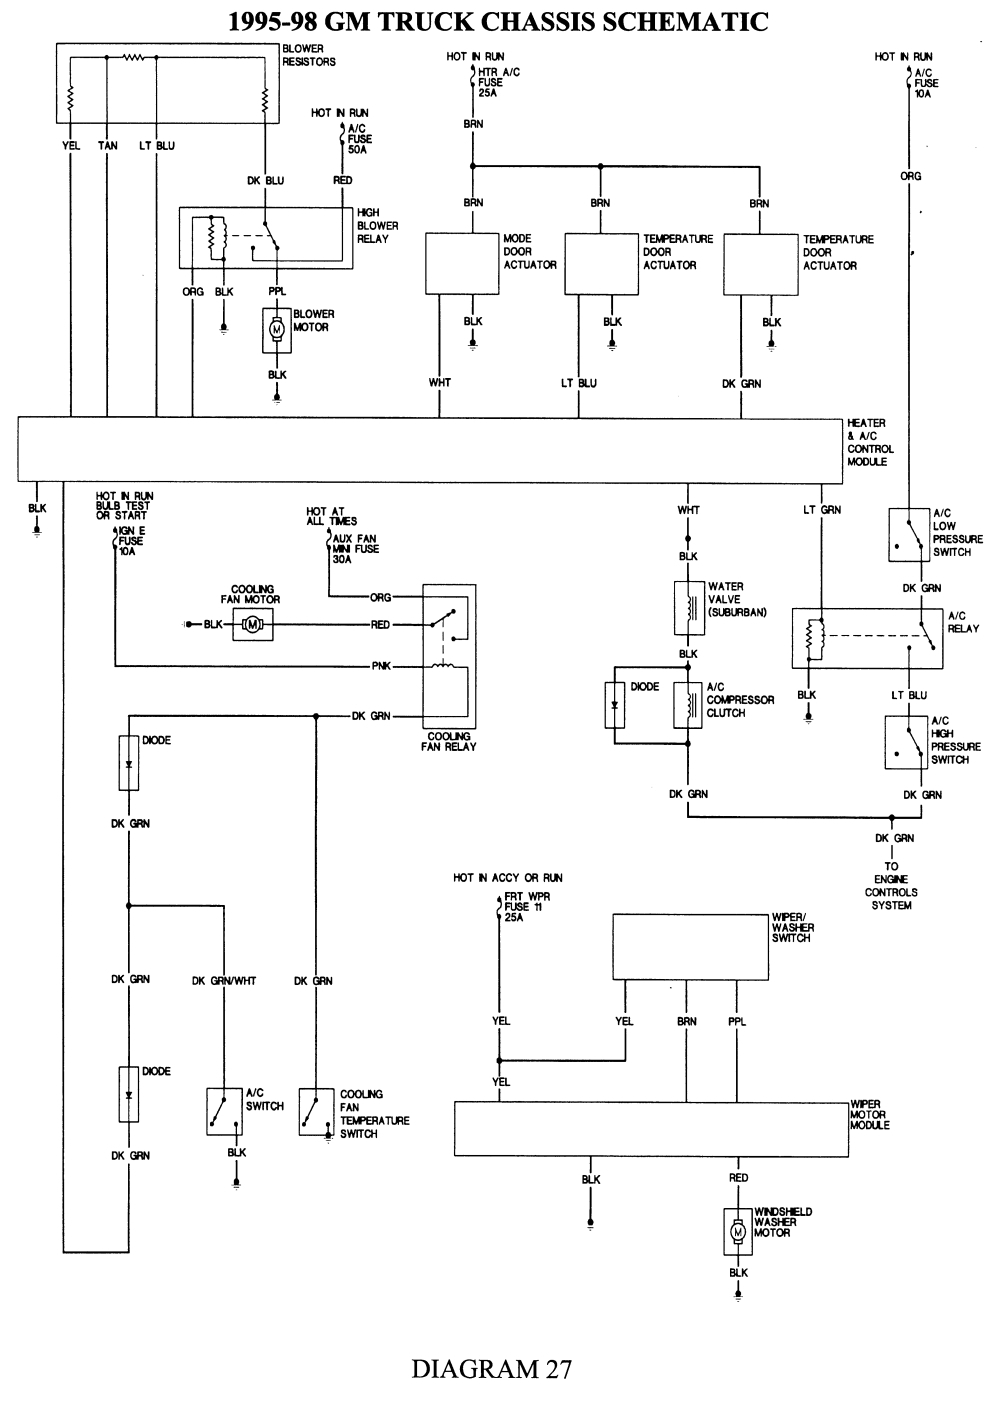 chevy 4x4 actuator wiring diagram Collection-Repair Guides Wiring Diagrams Wiring Diagrams Chevy 4—4 Actuator Wiring Diagram Best Chevy 15-o